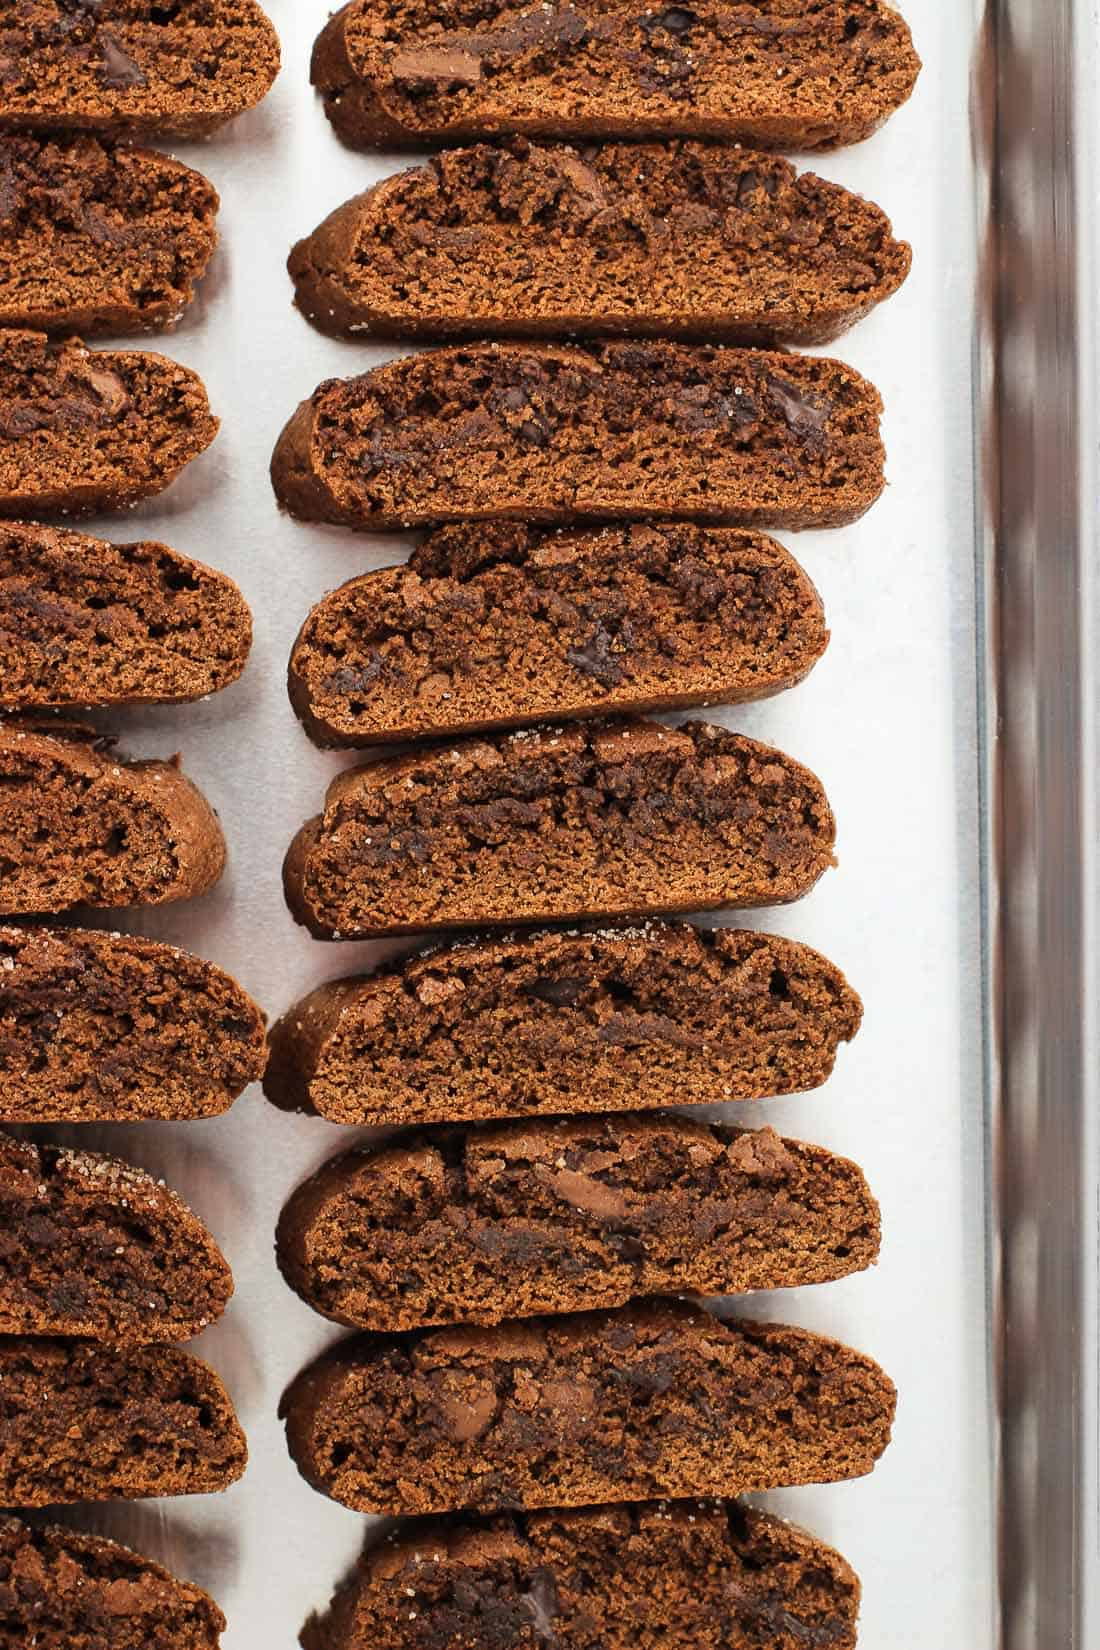 Mini Mexican Chocolate Biscotti are deep chocolate-y biscotti with a bold spice flavor coming from ground cinnamon and cayenne pepper. Topped with cinnamon sugar, these bar cookies are a great pairing for a cup of coffee or as a part of holiday cookie trays.